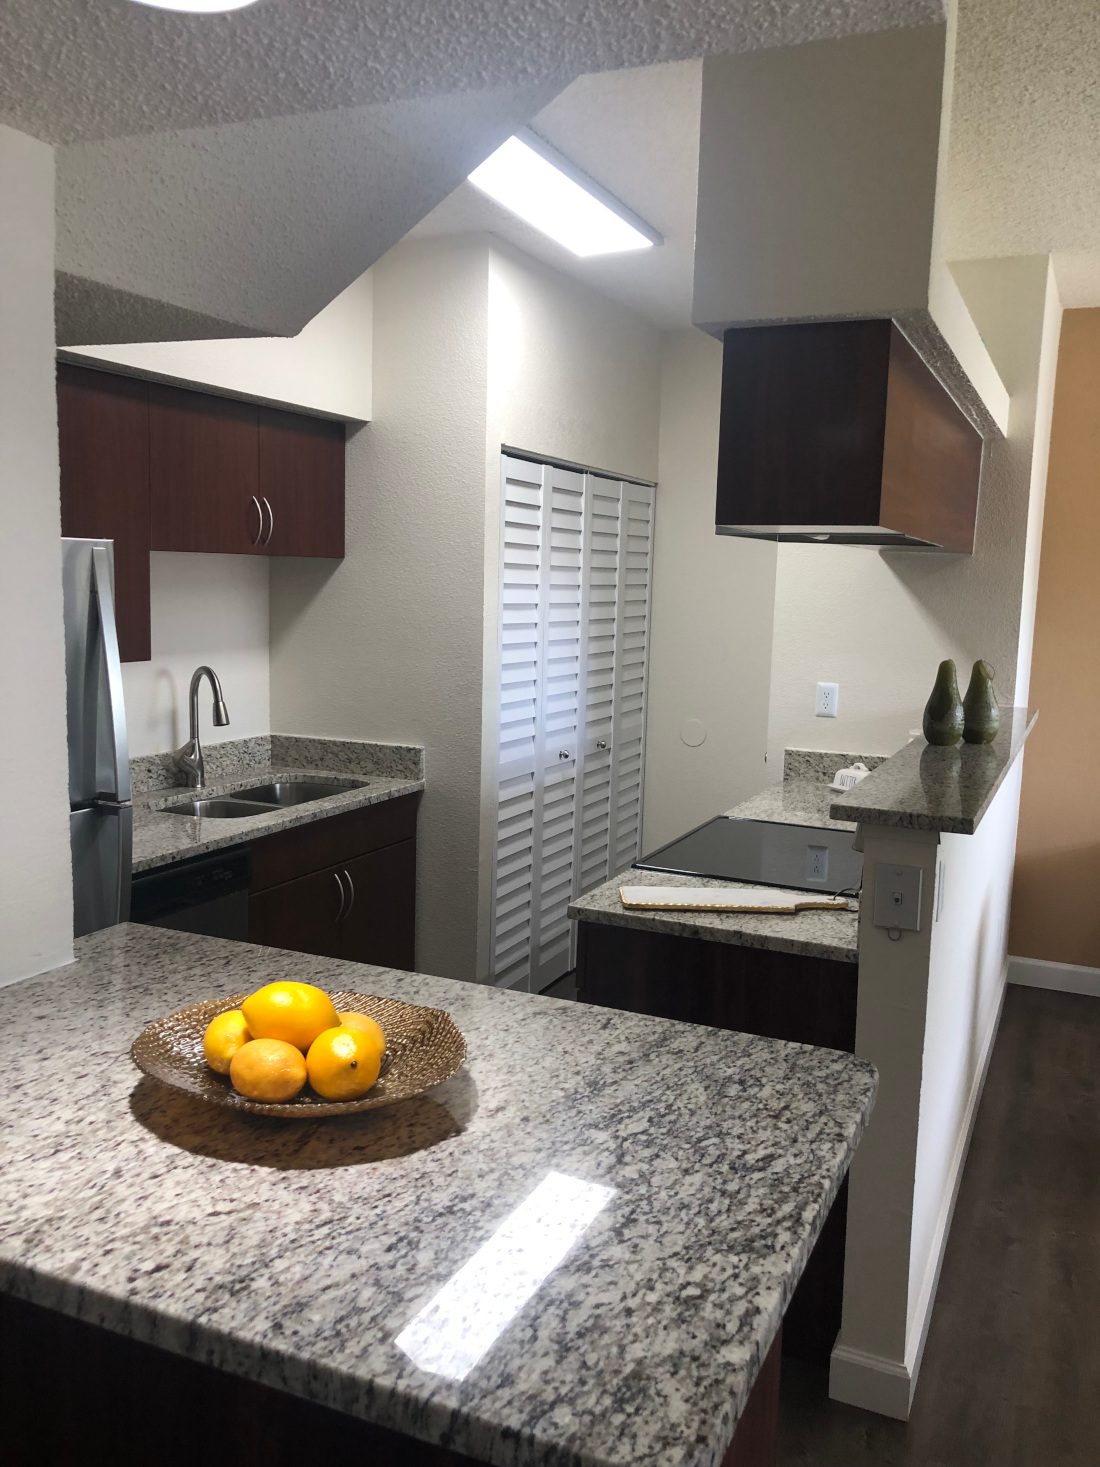 Kitchen Counter top and sink at Waterford Point Apartments in Miami, Florida